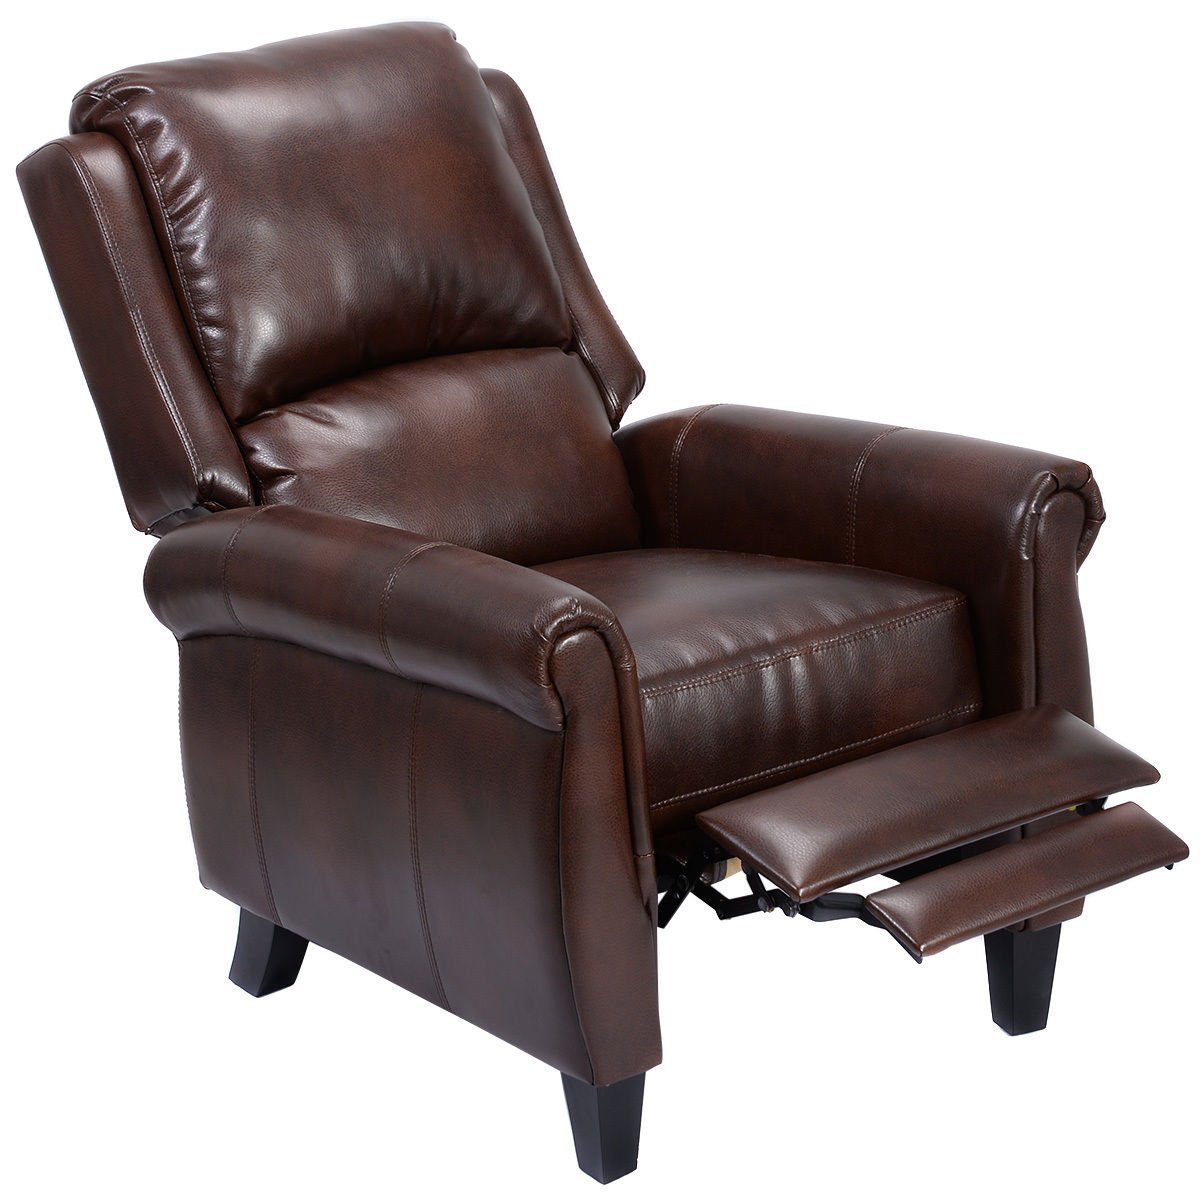 Giantex PU Leather Recliner Chair Push Back Club Living Room Seat Furniture w/Footrest (Brown)